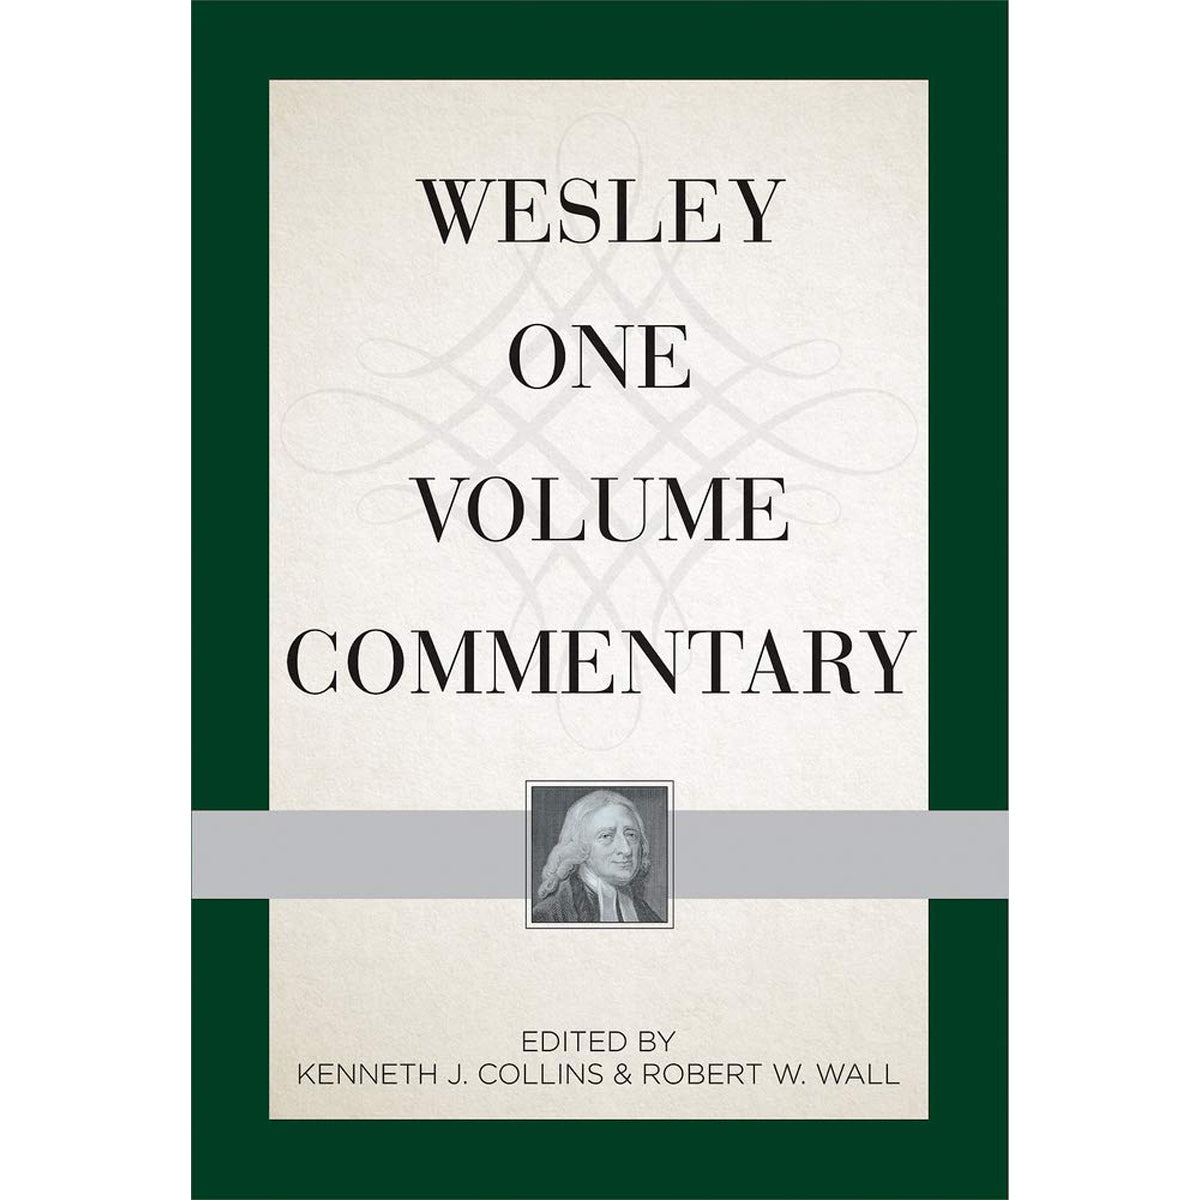 Wesley One Volume Commentary (Hardcover)